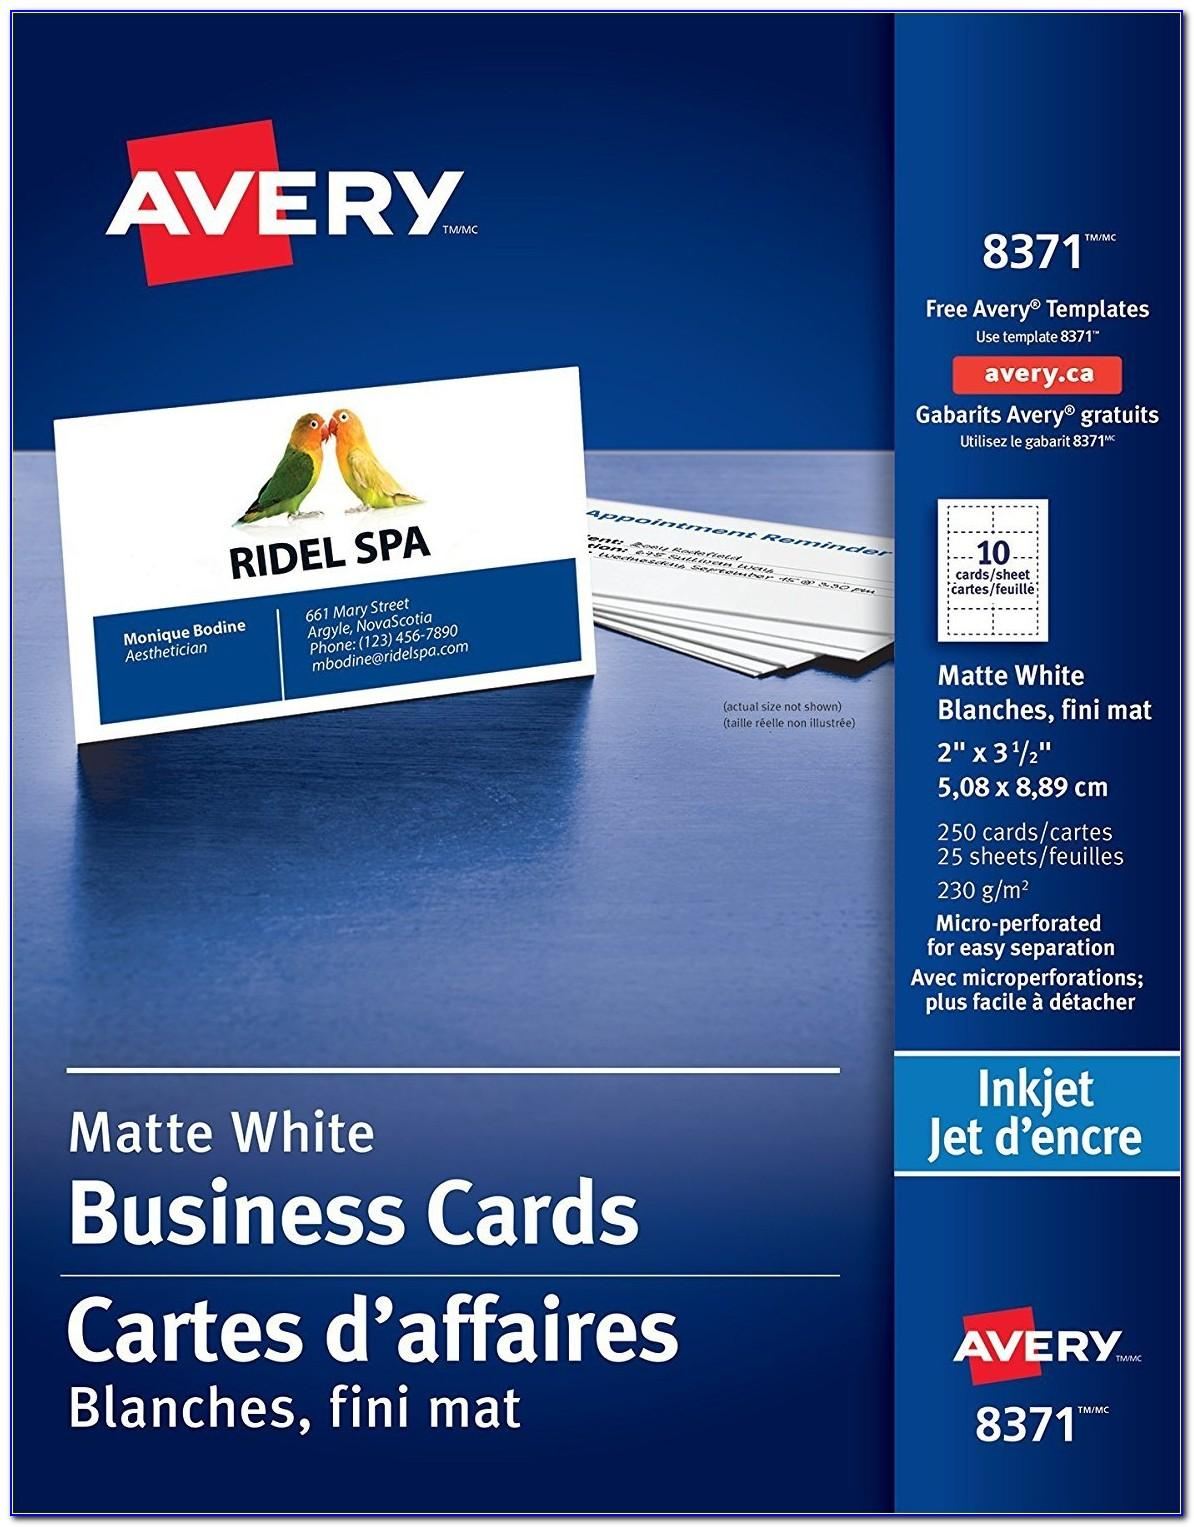 Print Avery Business Cards In Word